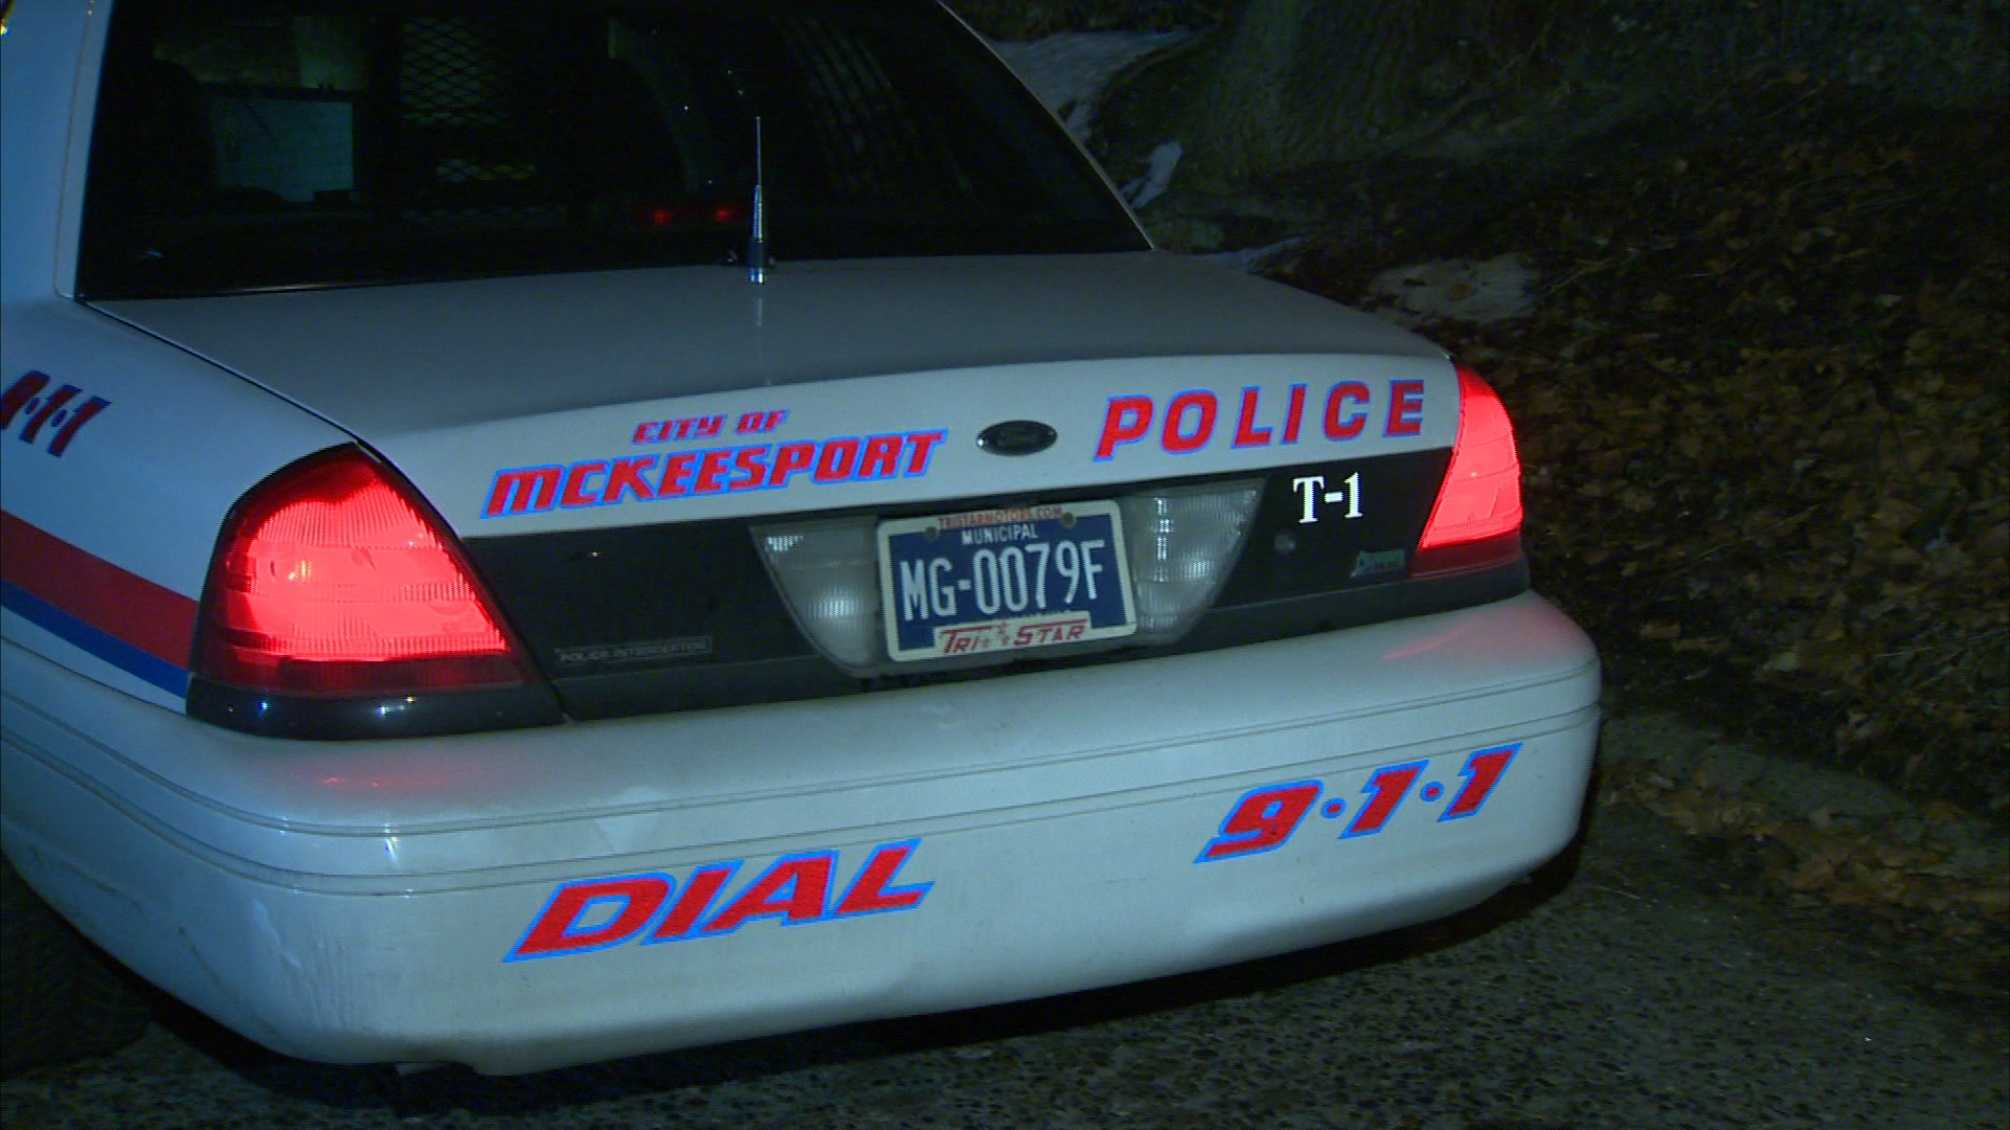 McKeesport police confirm one person was shot overnight in McKeesport.